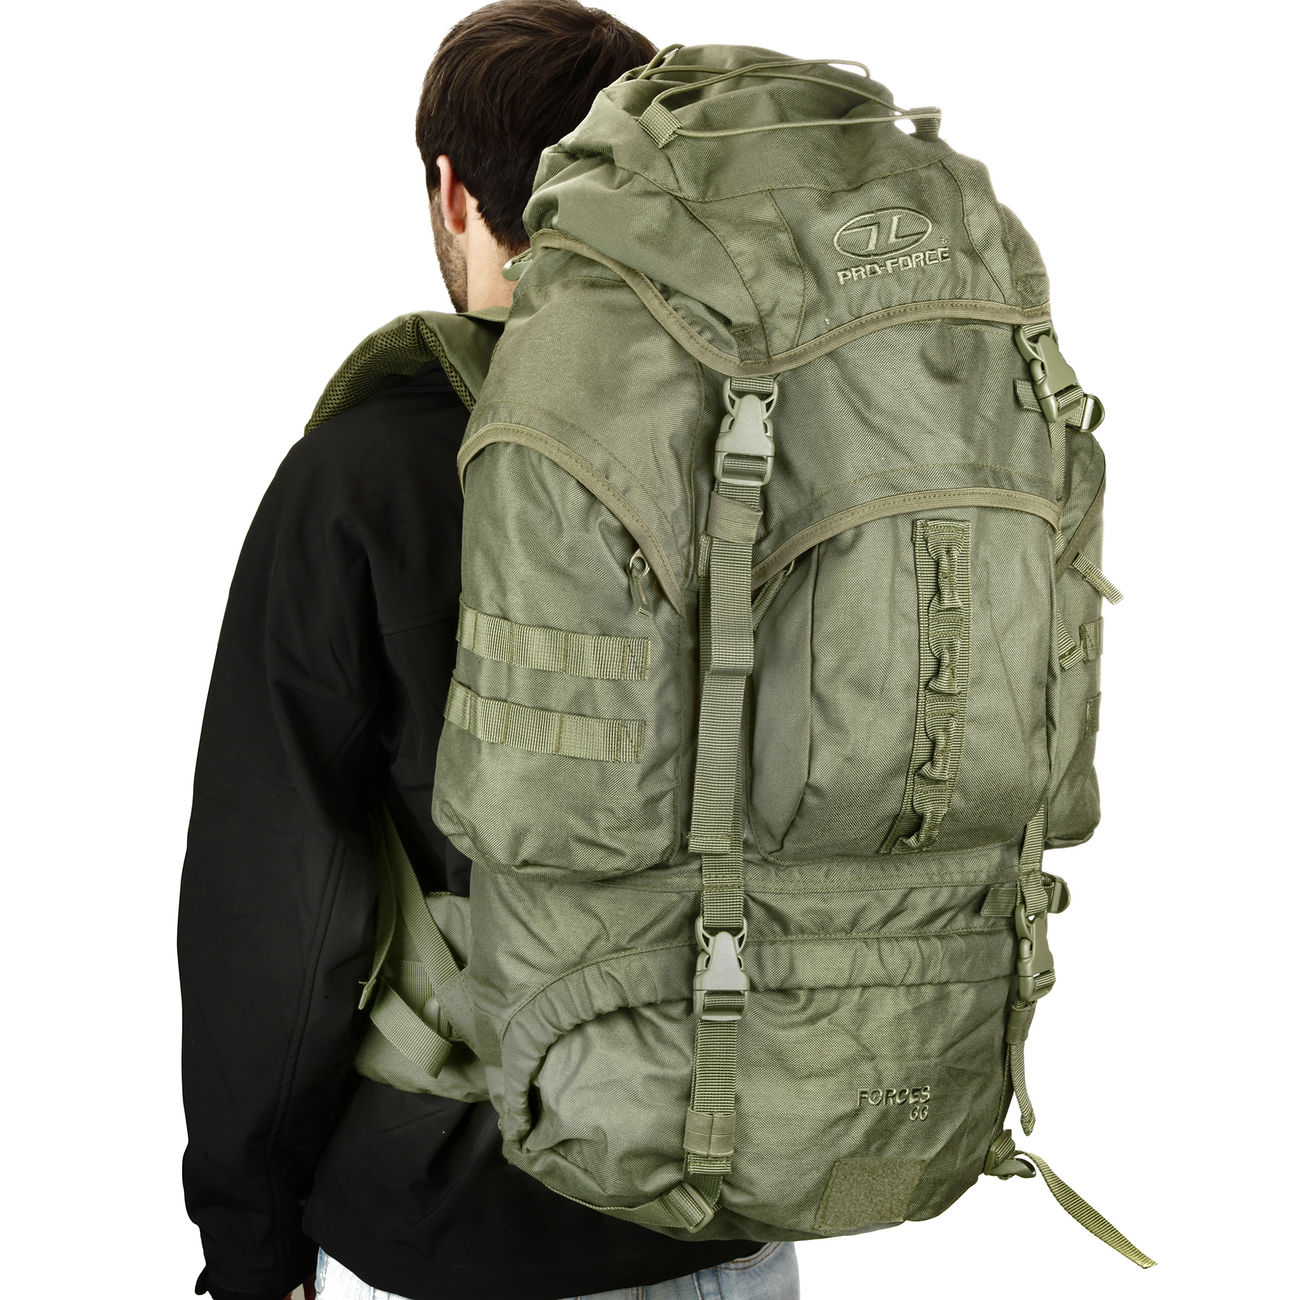 Highlander Rucksack Modell New Forces 66 Liter oliv 0